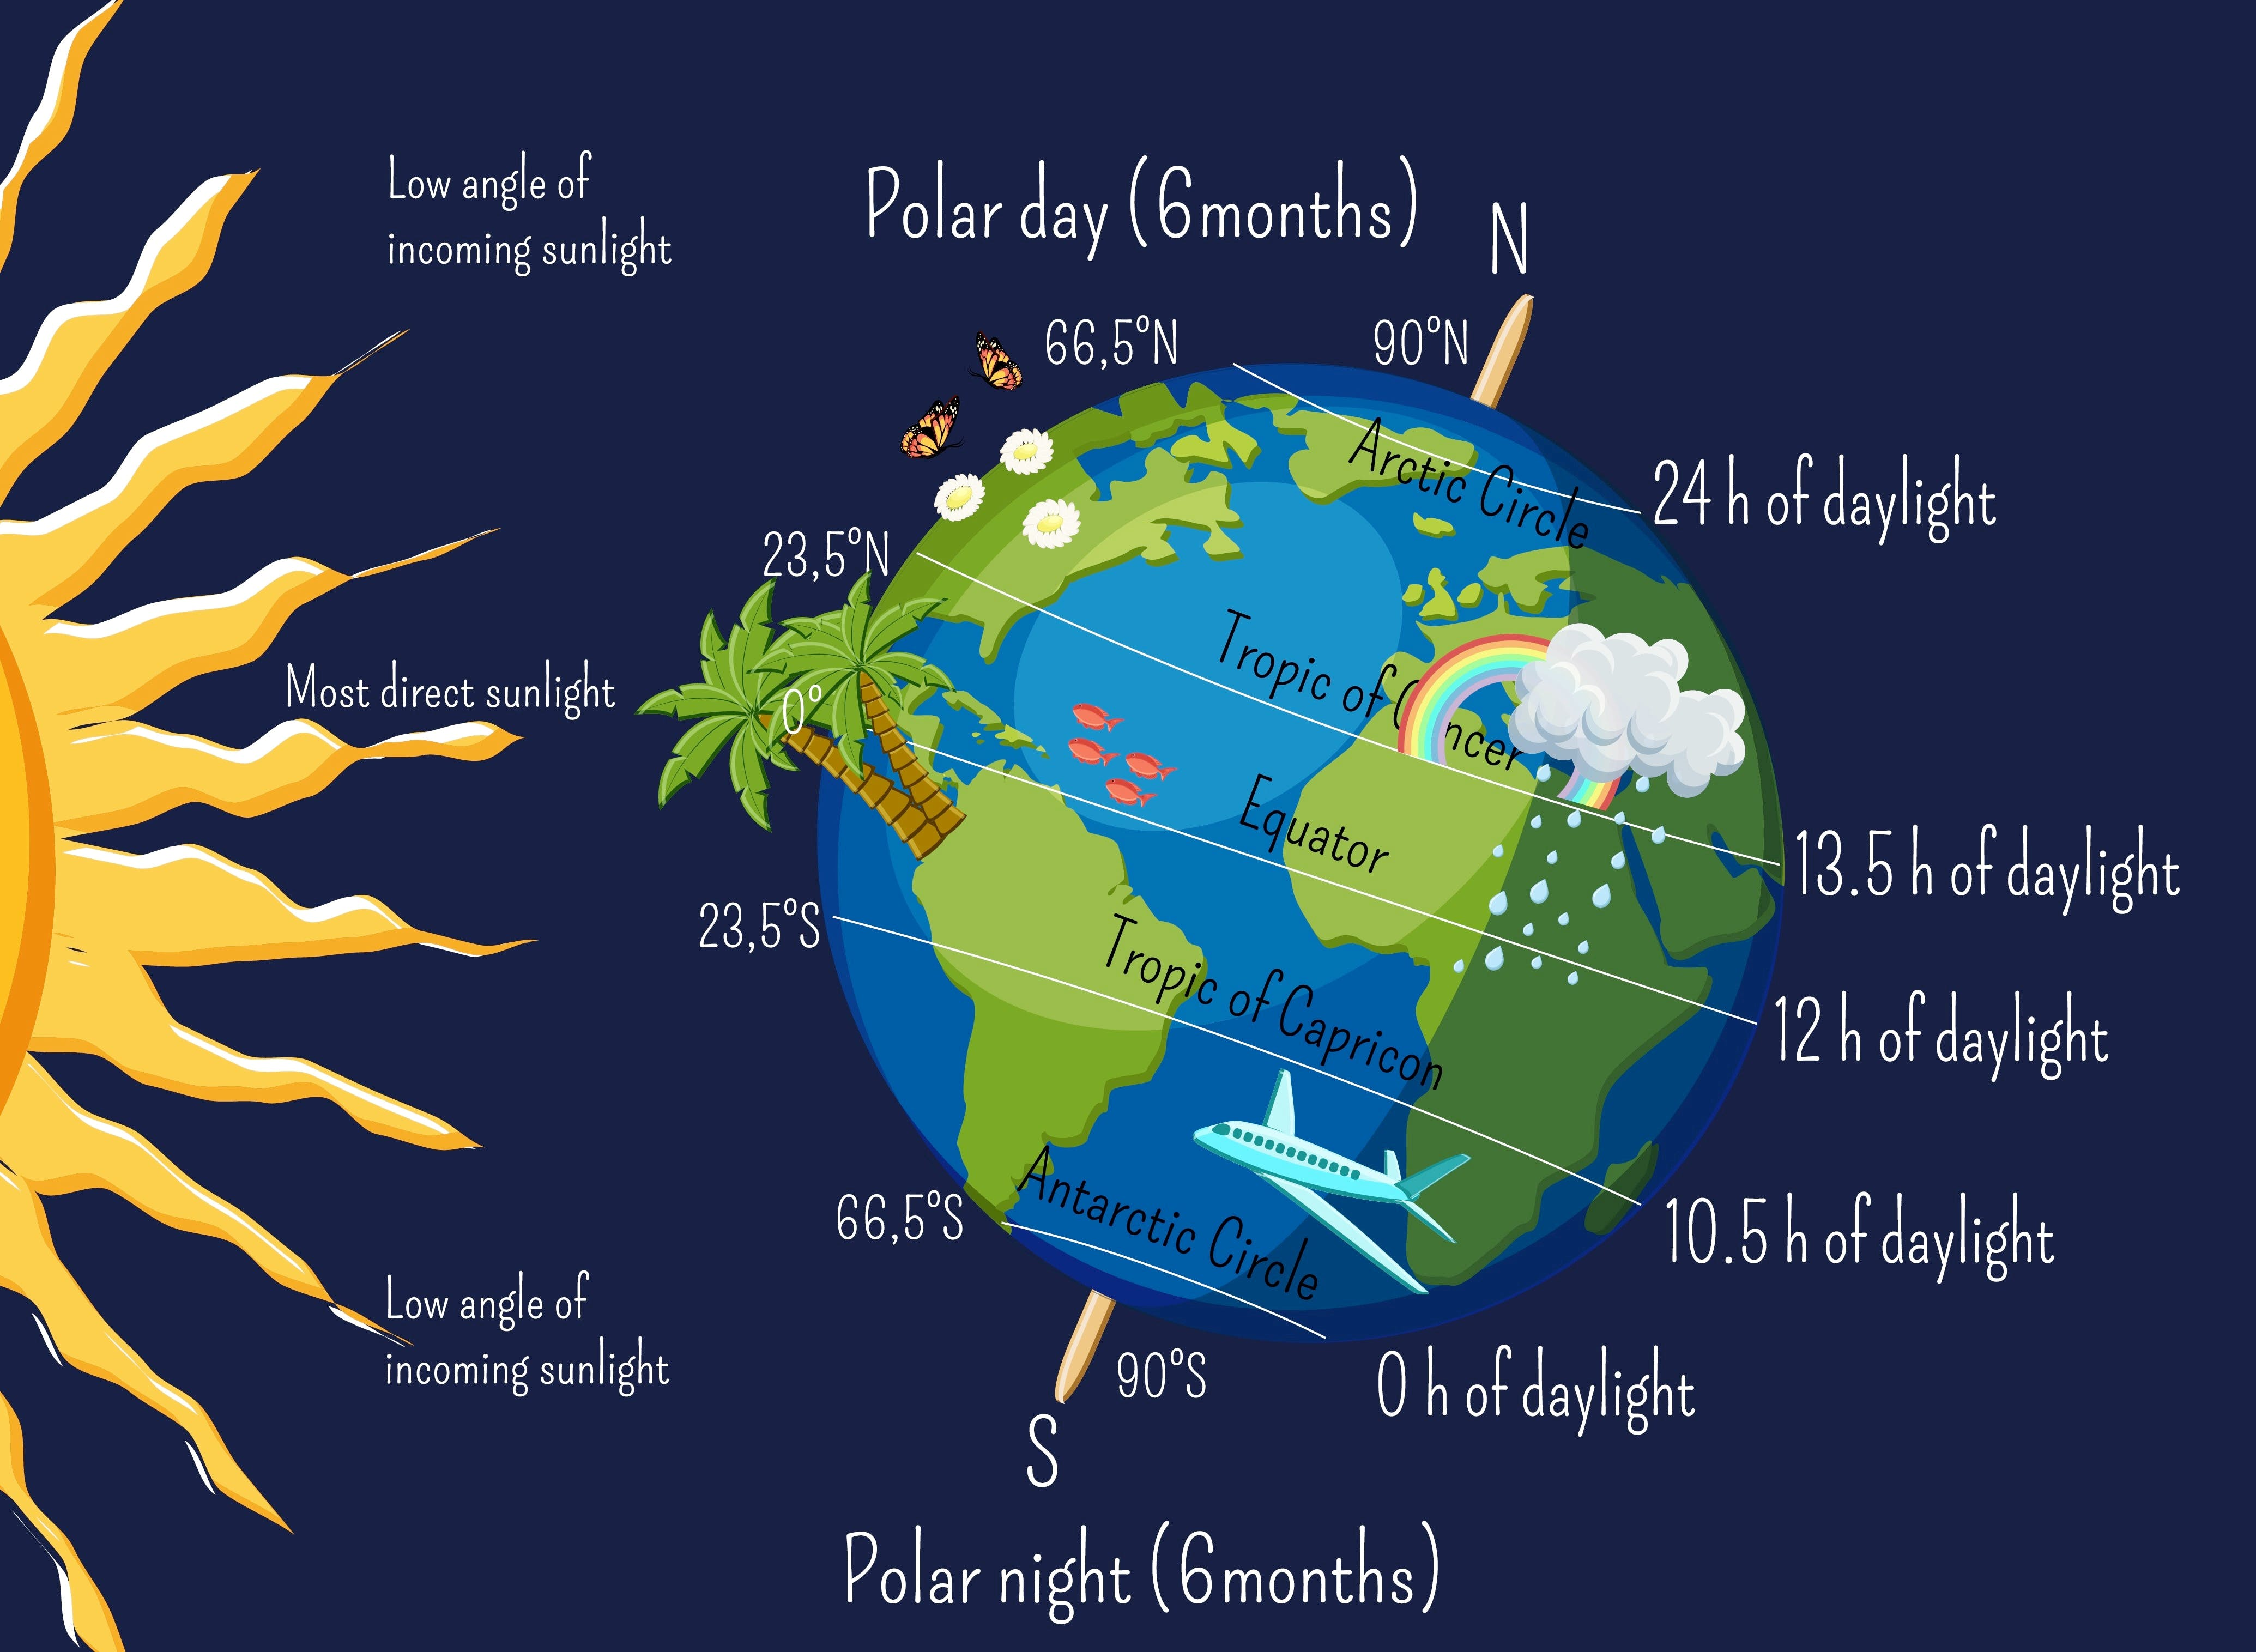 This year, the summer solstice officially occurs at 12:32 a.m. on June 21.